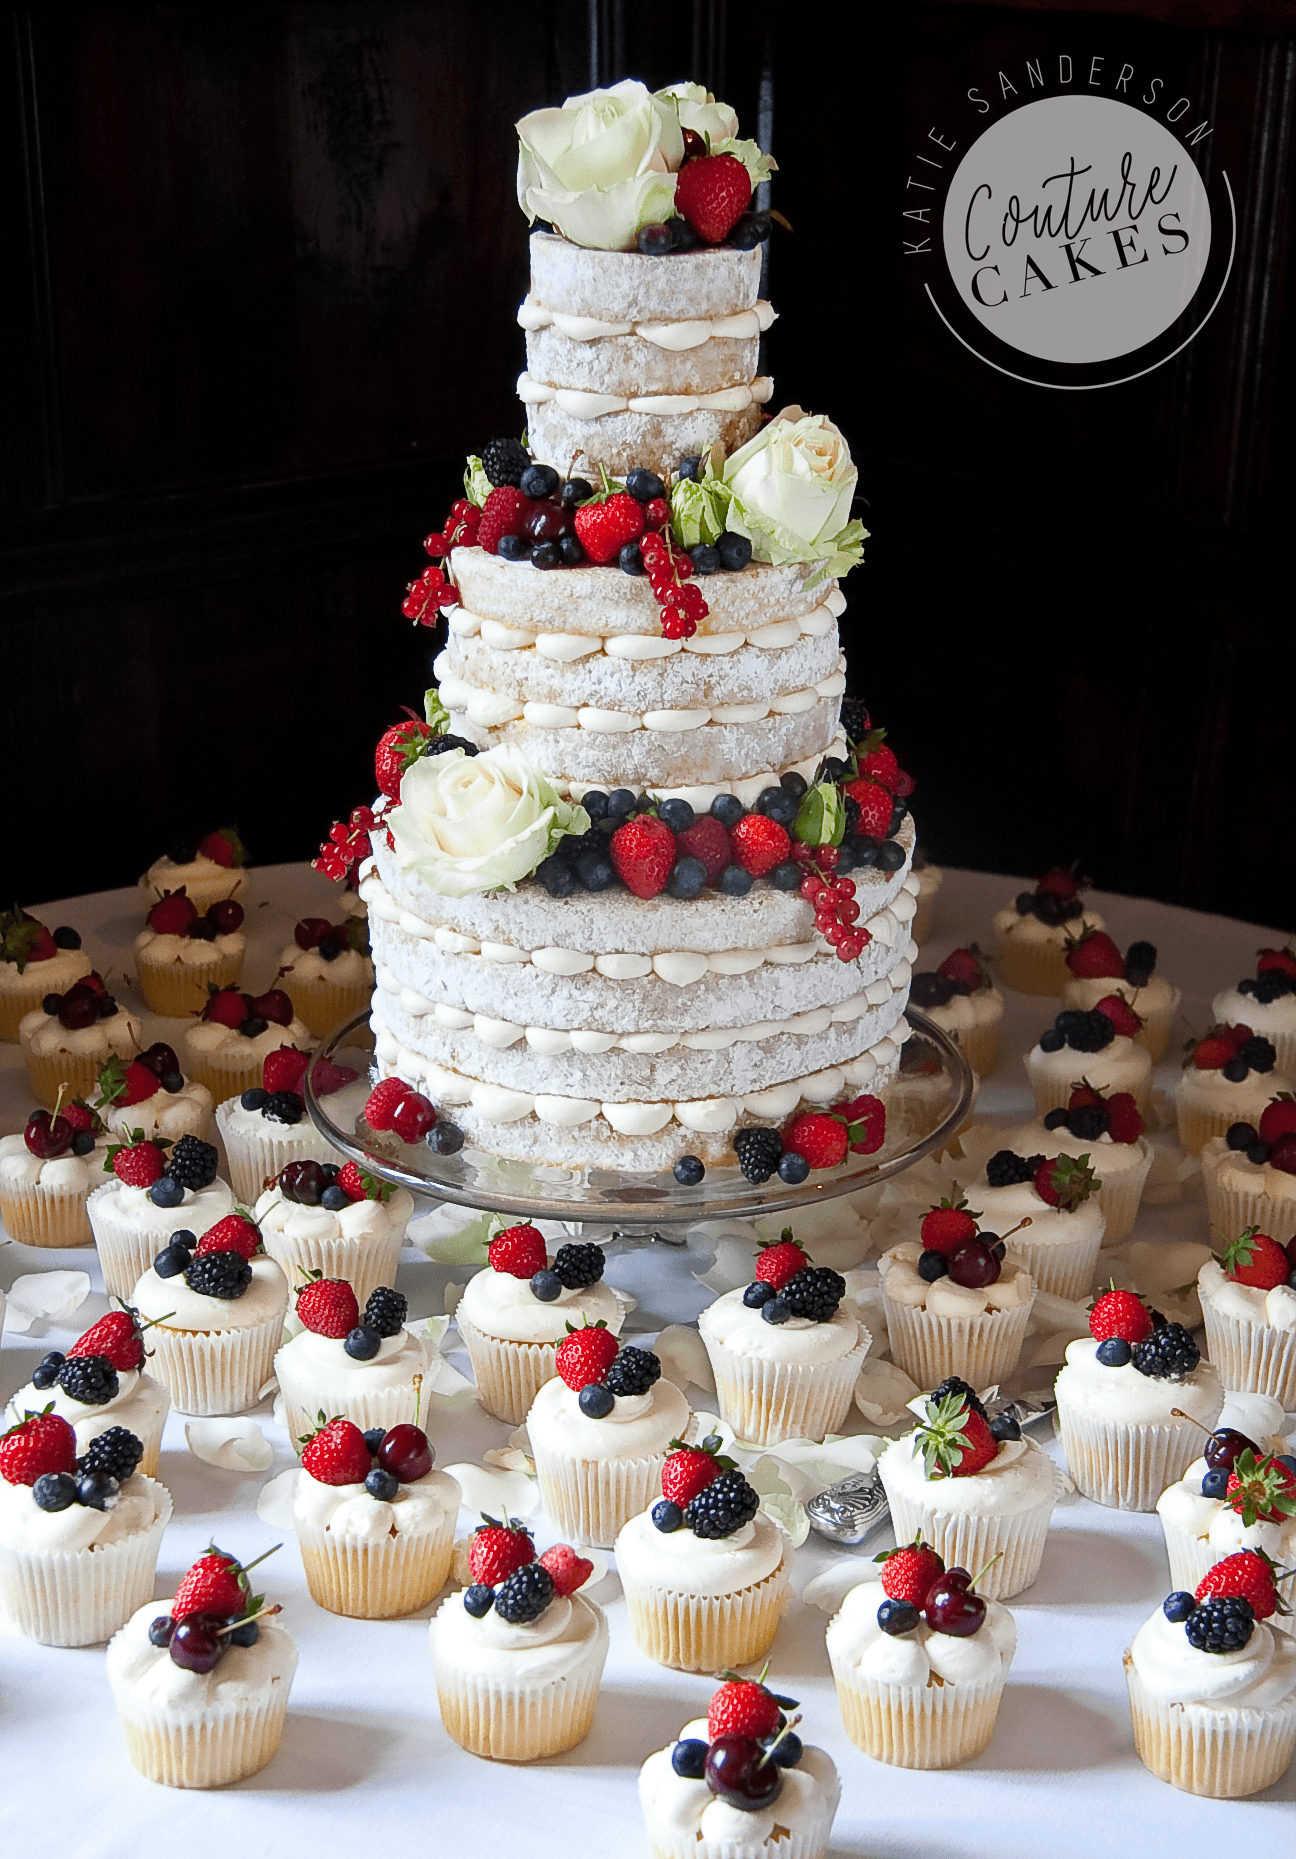 Naked Cake serves 110 portions, Price £355 plus £3.50 per cupcake